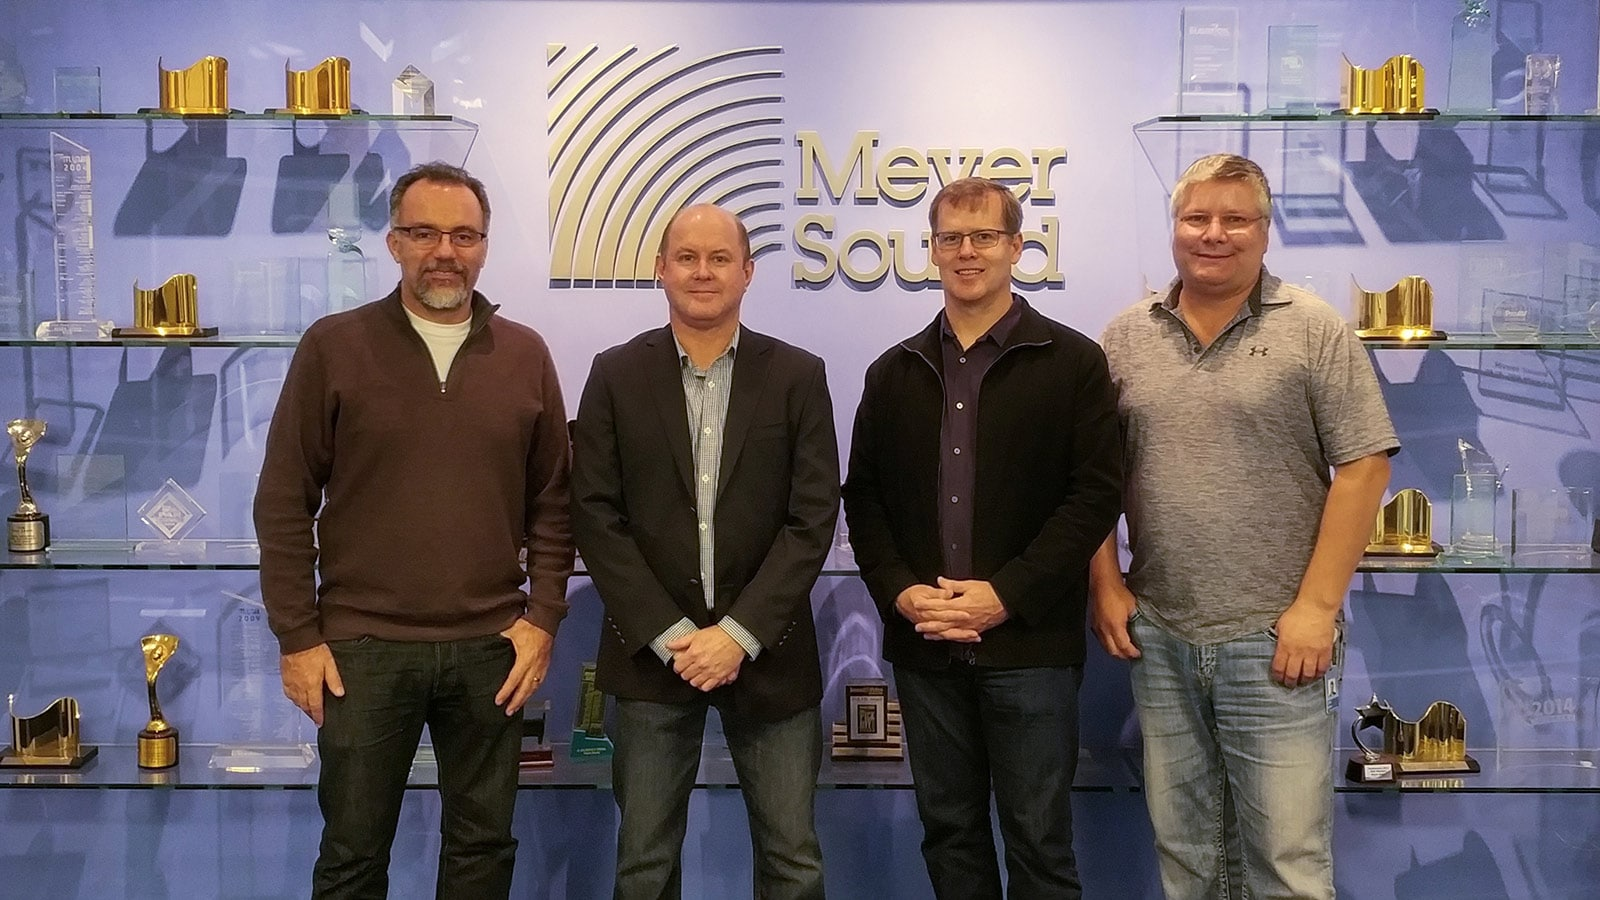 Left to right: Antonio Zacarias, Vice President of Global Customer Engagement; Don McConnell and Jeff Shoesmith of Audio Brands Australia; John McMahon, Vice President of Solutions and Strategy